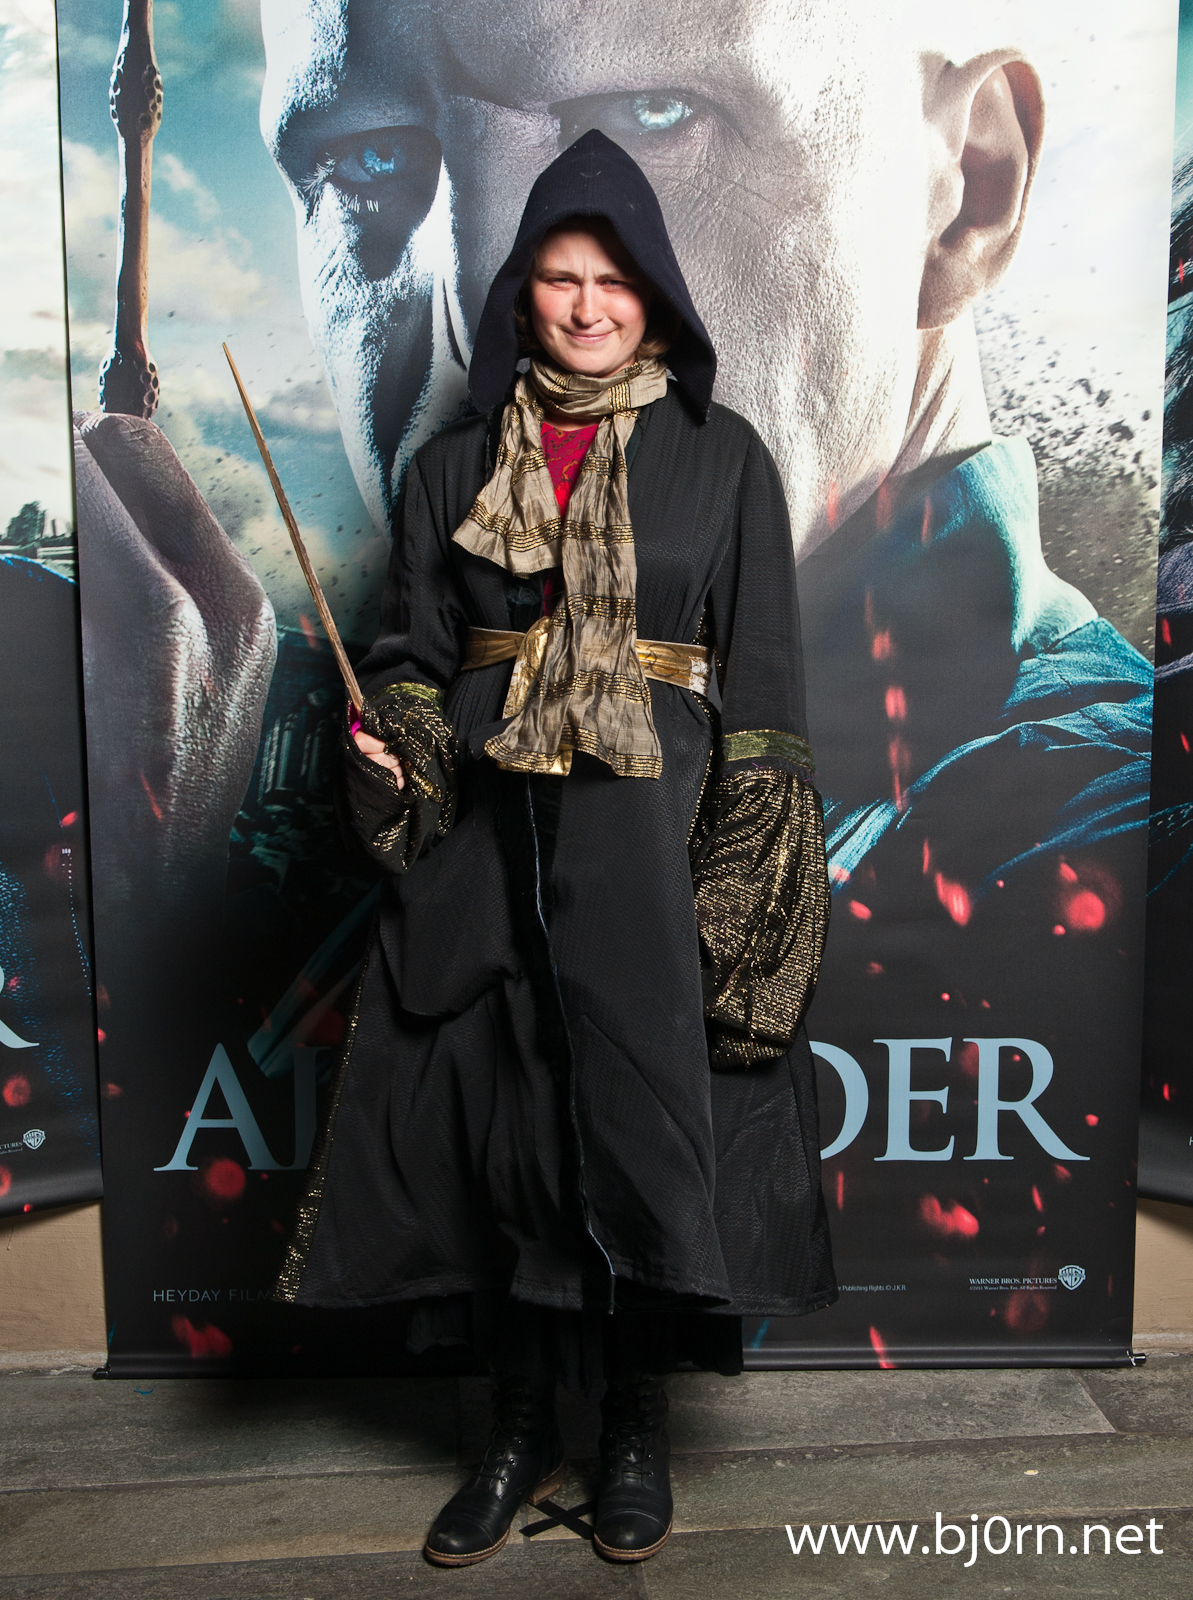 photo: Bjørn Christiansen, The Harry Potter-première at Nova Kinosenter in Trondheim, 2011